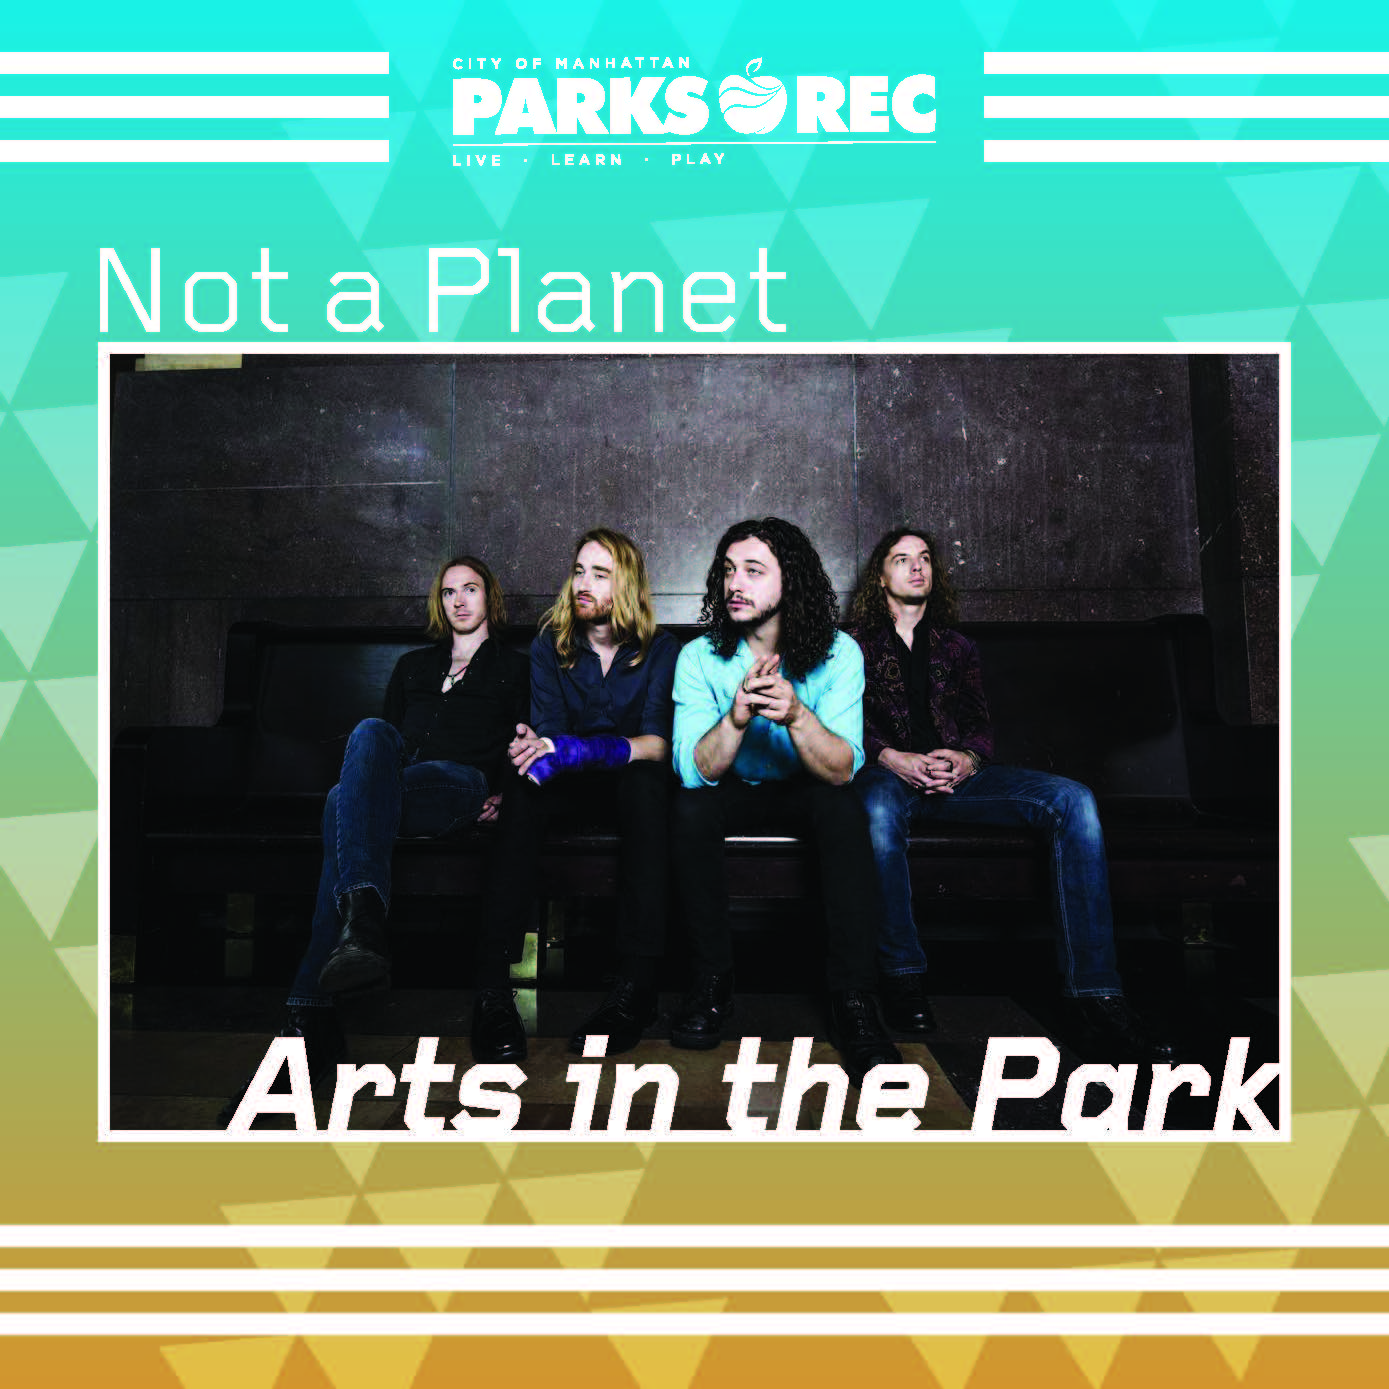 Arts in the Park SocialGraphics2017_Page_4.jpg